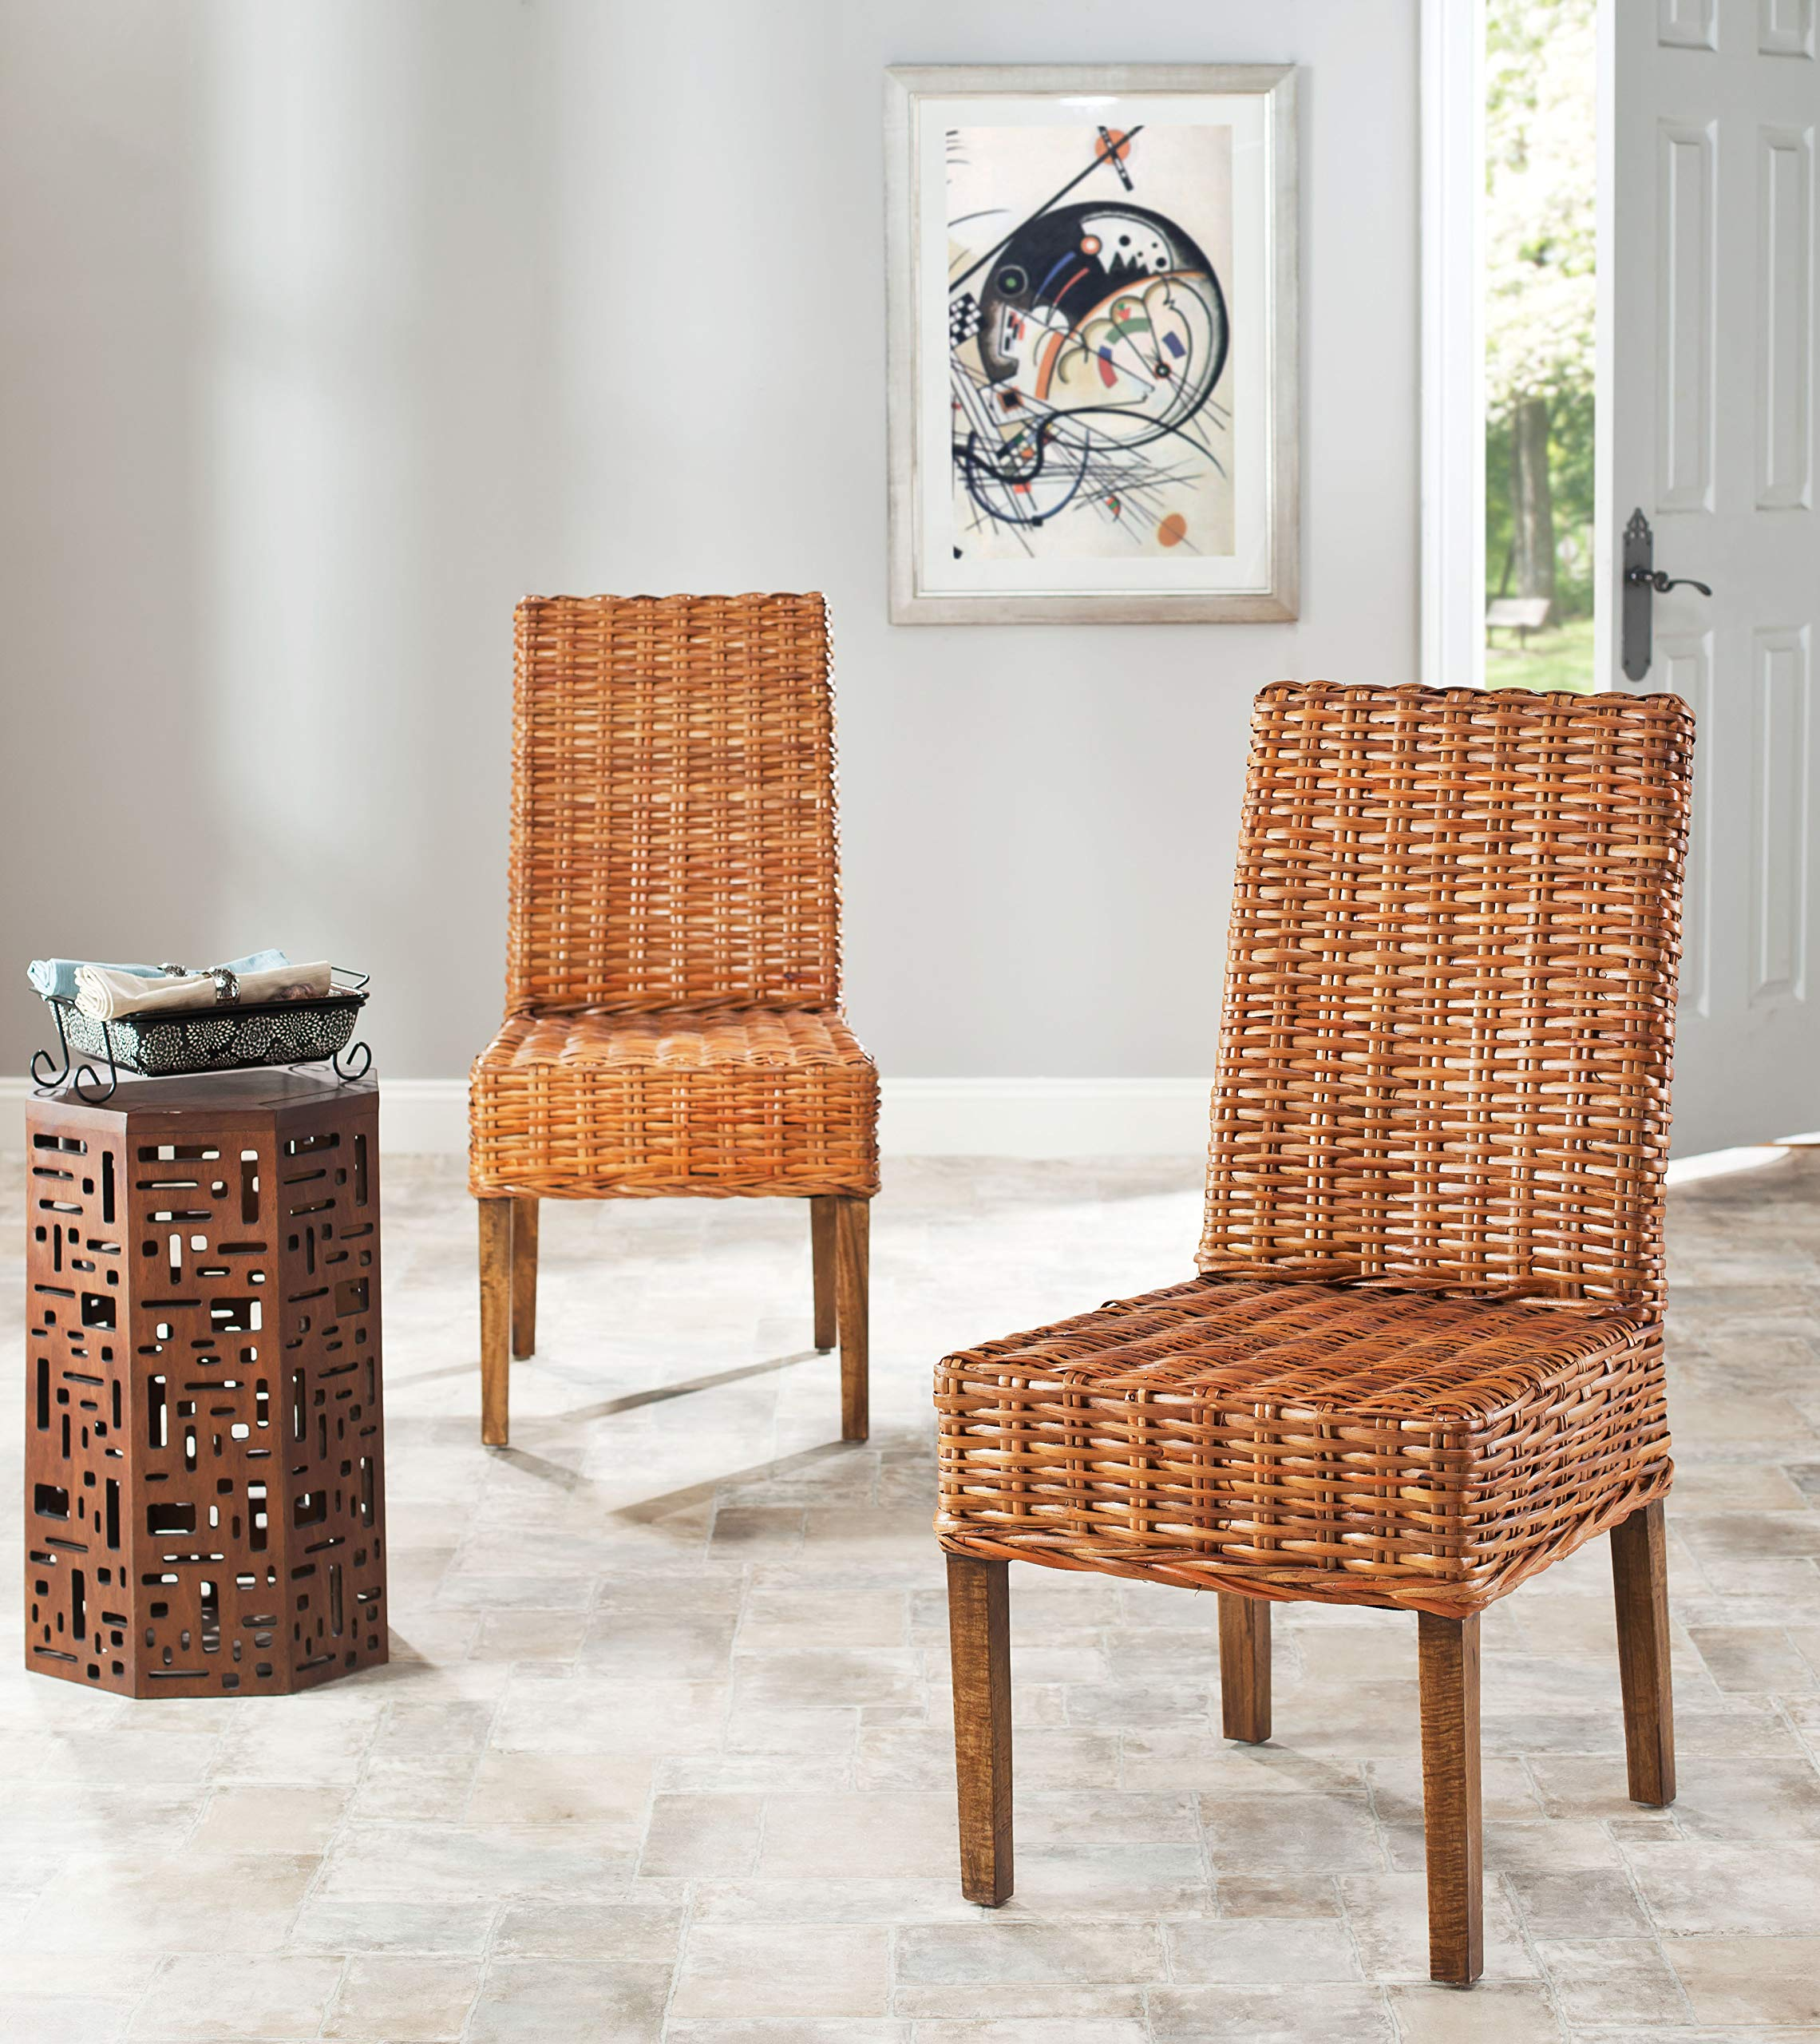 Safavieh Home Collection Aubrey Honey Oak Wicker Side Chair, Set of 2